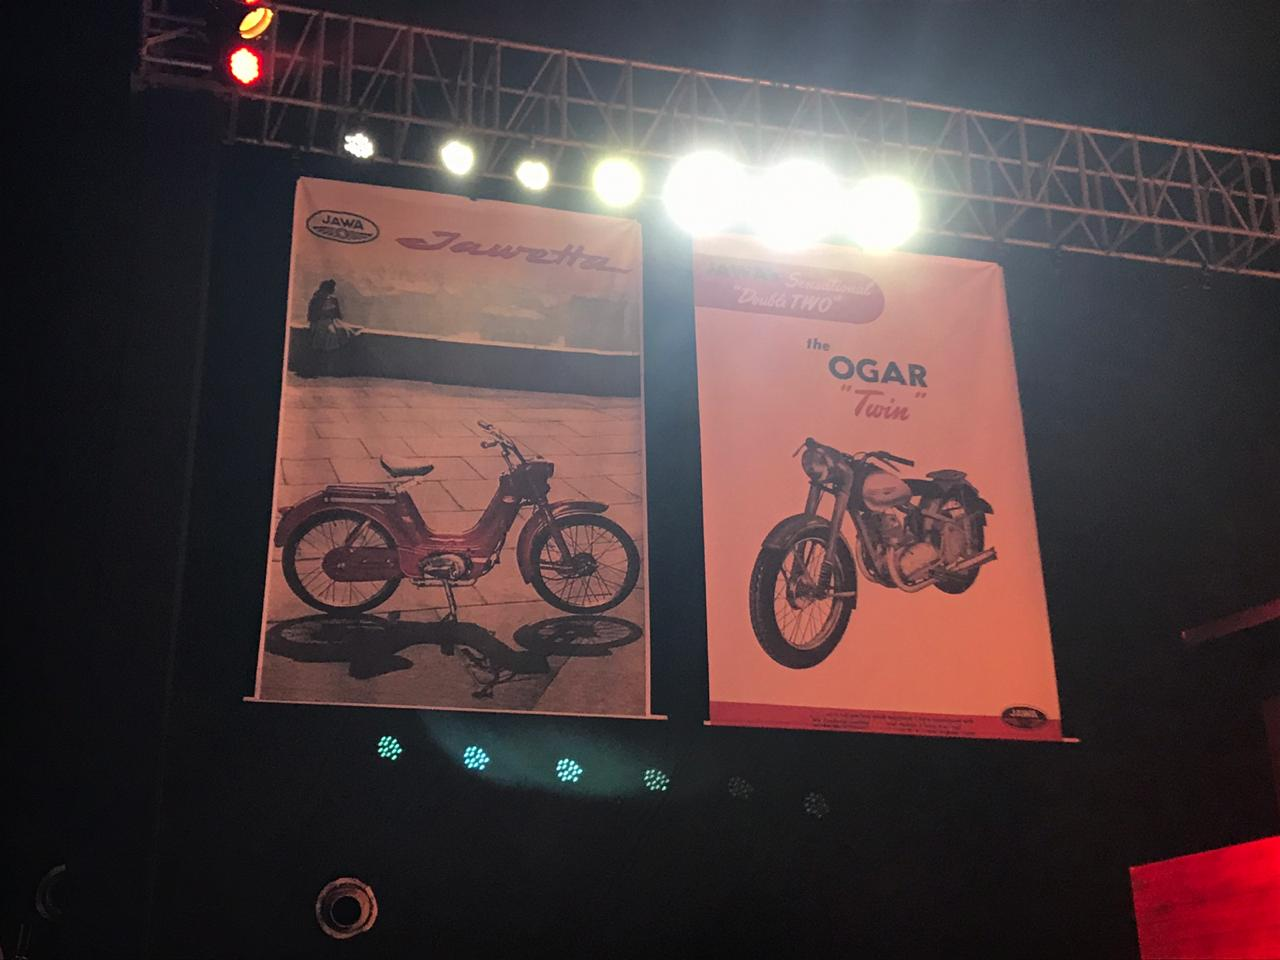 <p>Some of the posters of old Jawa&nbsp;Motorcycles on display at the launch event here to evoke nostalgia.&nbsp;</p>